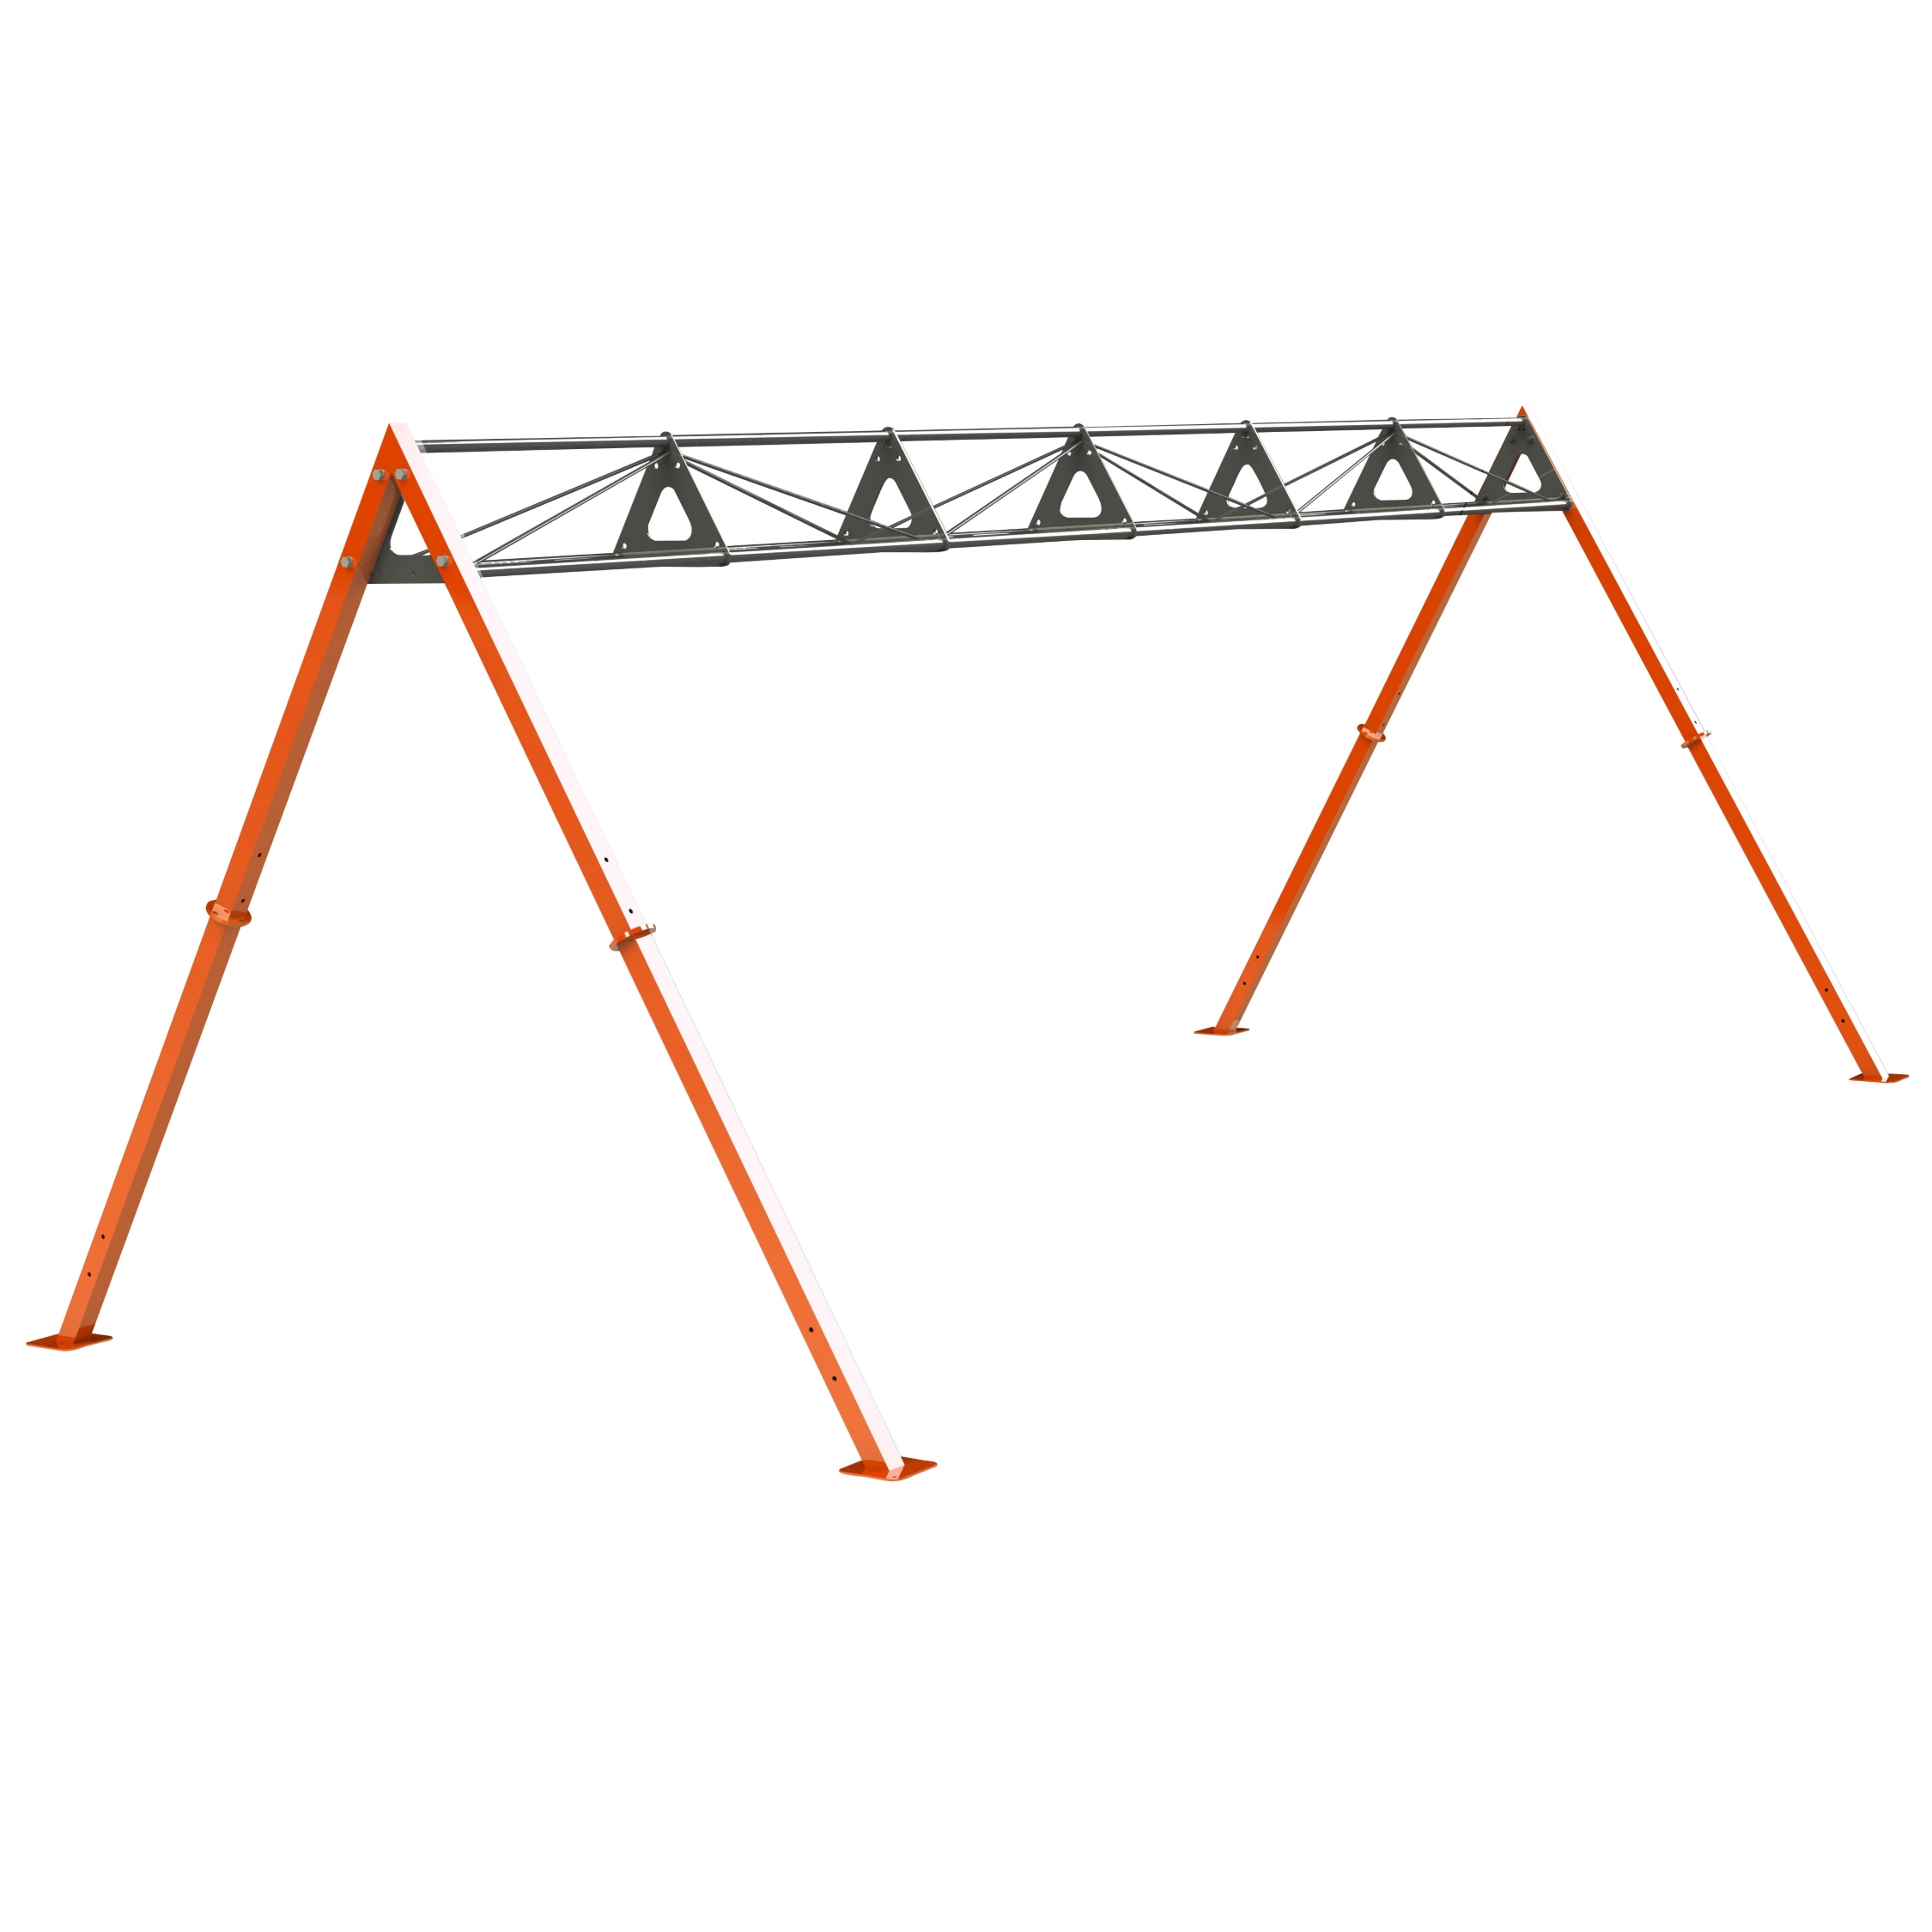 5m Suspension Training Frame (10 Users)